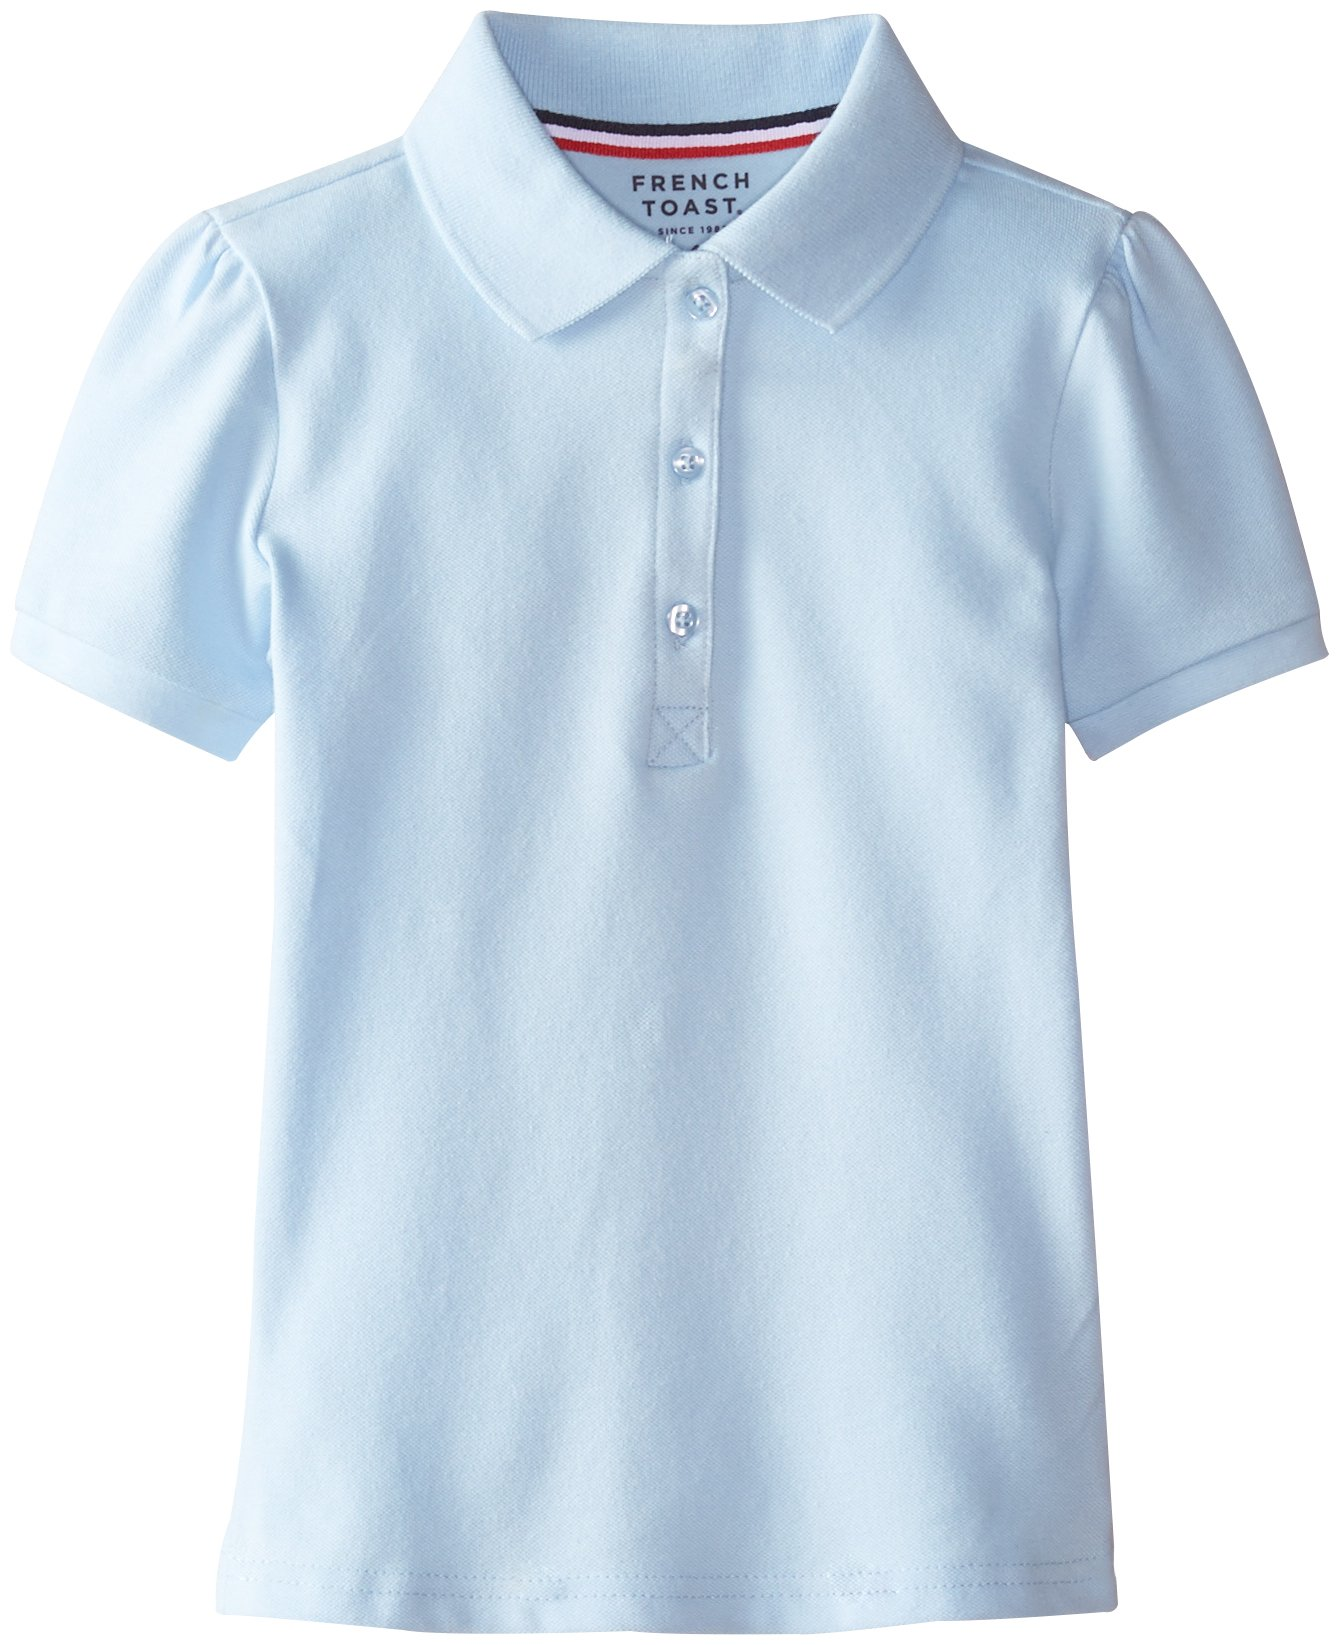 French Toast Little Girls' Short Sleeve Stretch Pique Polo, Light Blue, 6